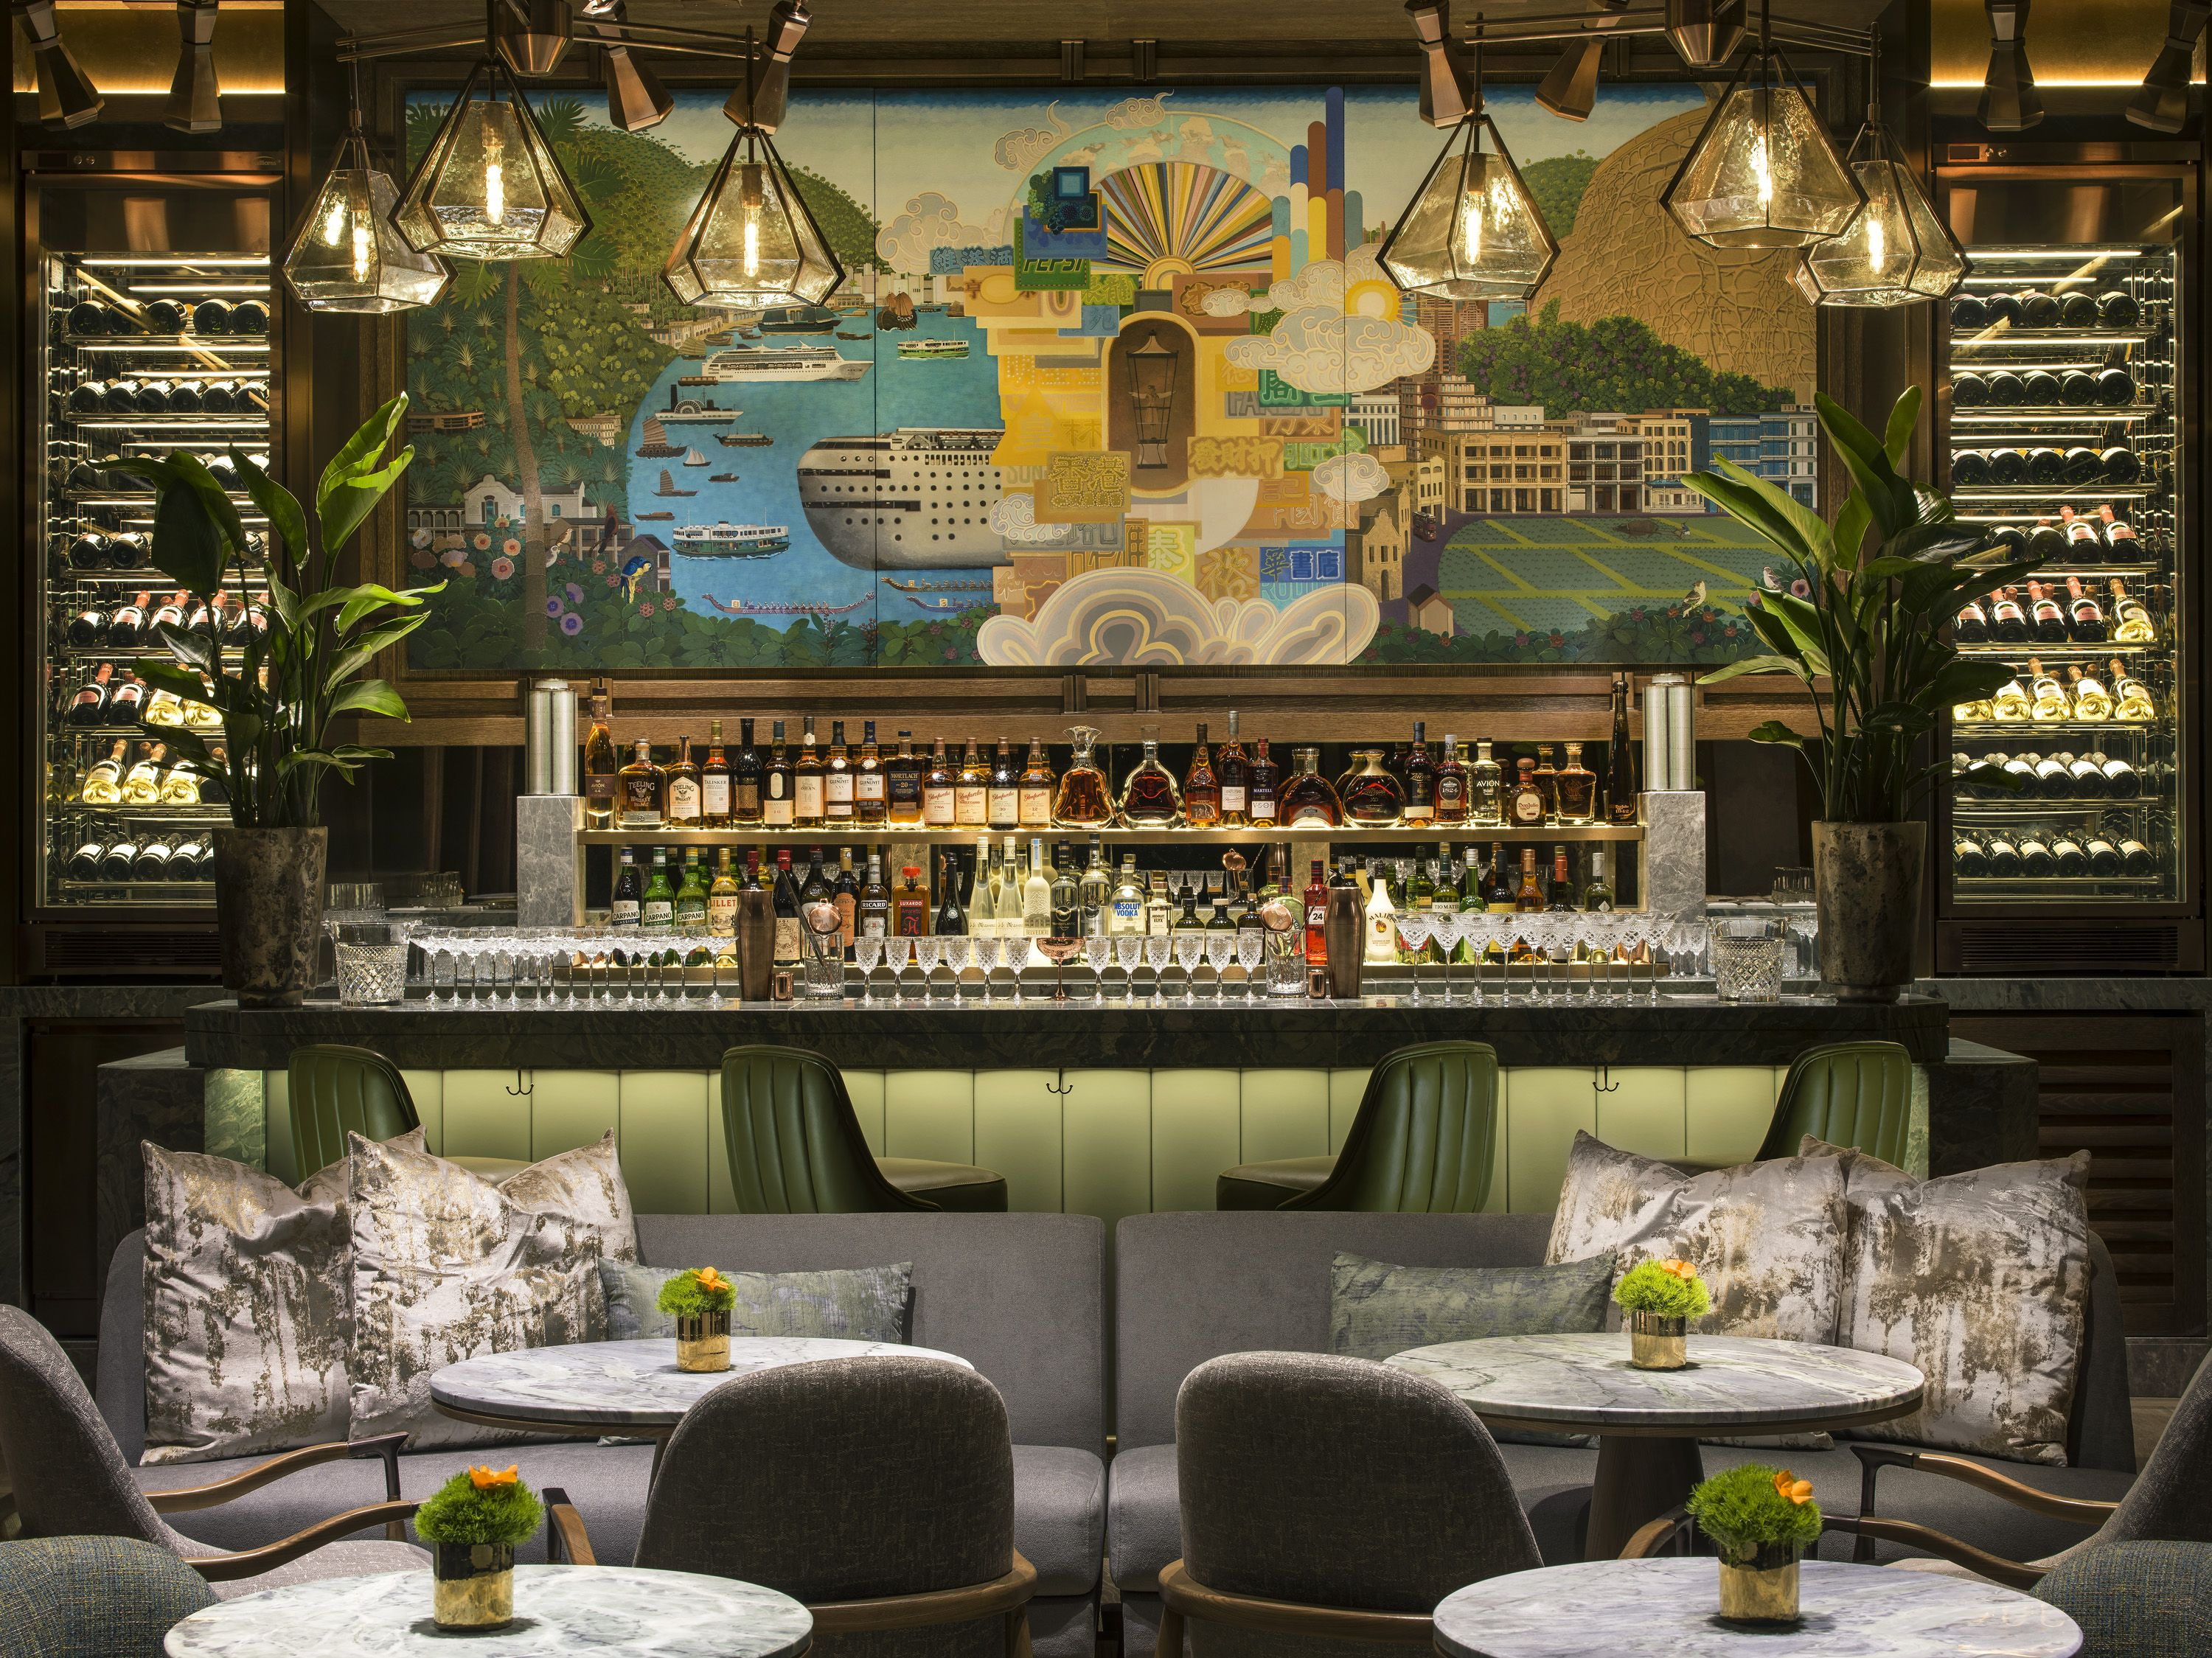 Is This New St. Regis in New York or Hong Kong?